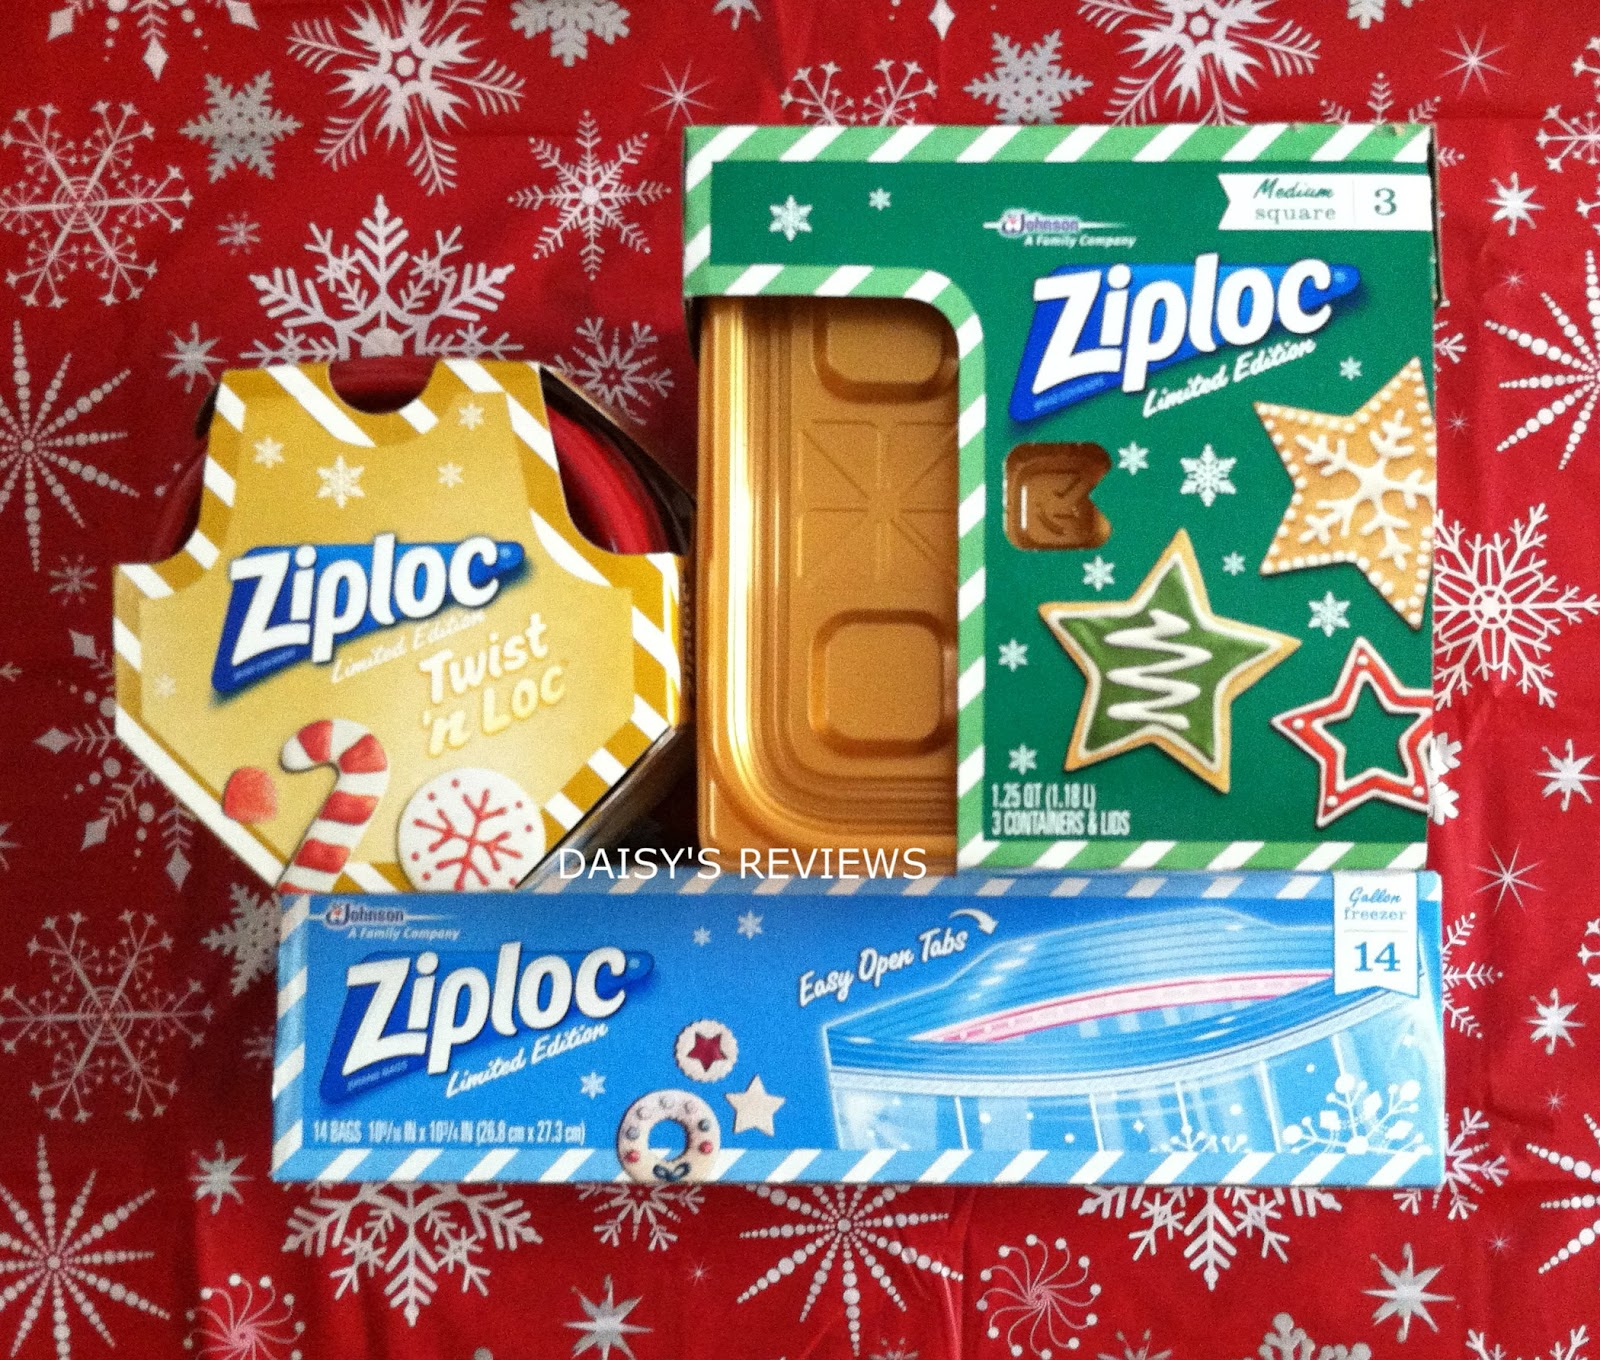 If Your Baking To Send Holiday Cookies Cakes Cupcakes For A Gift These Ziploc Storage Bags